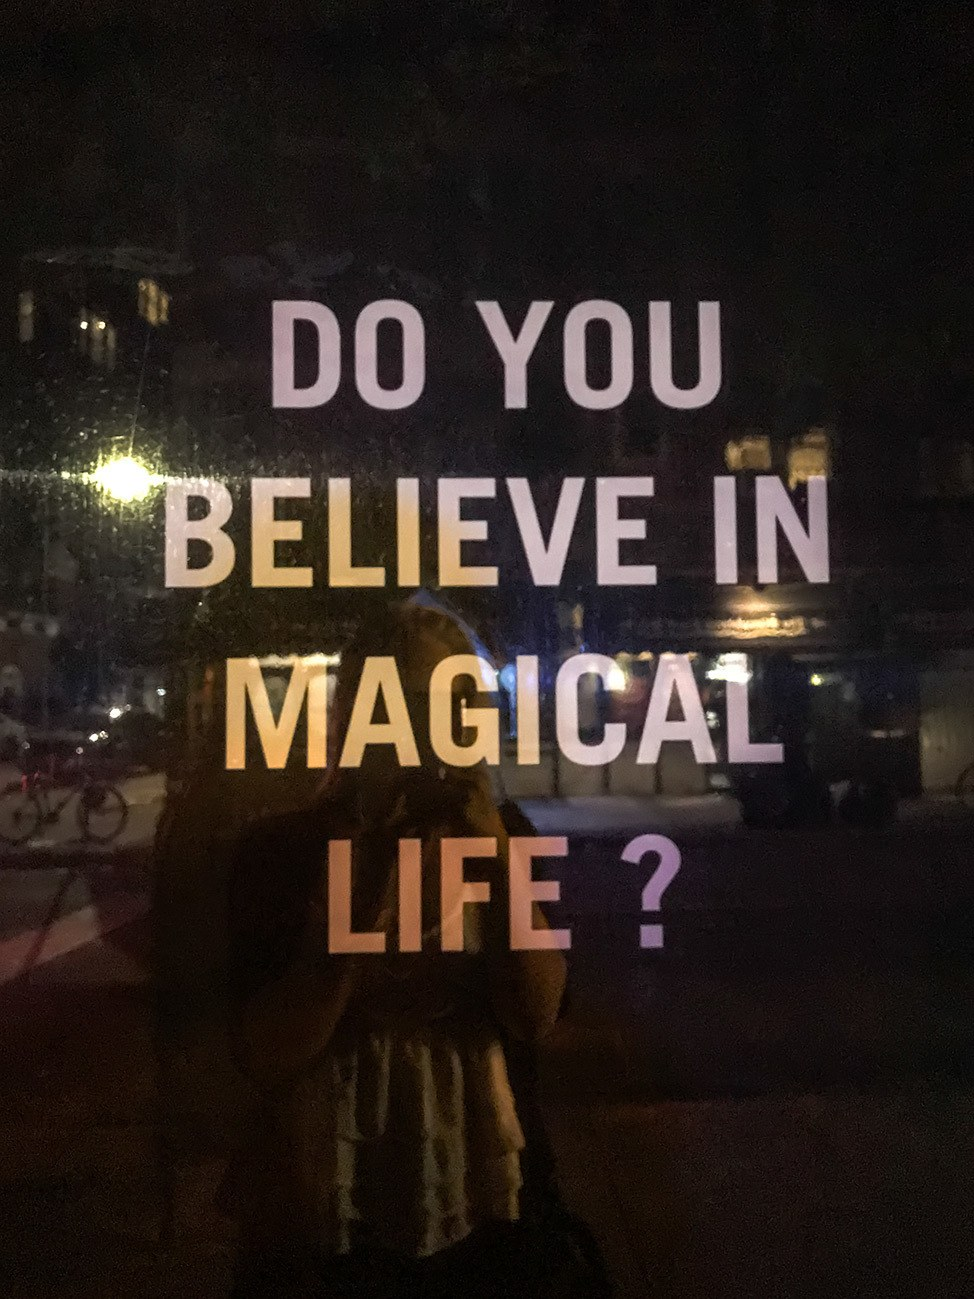 Do you believe in magical life?